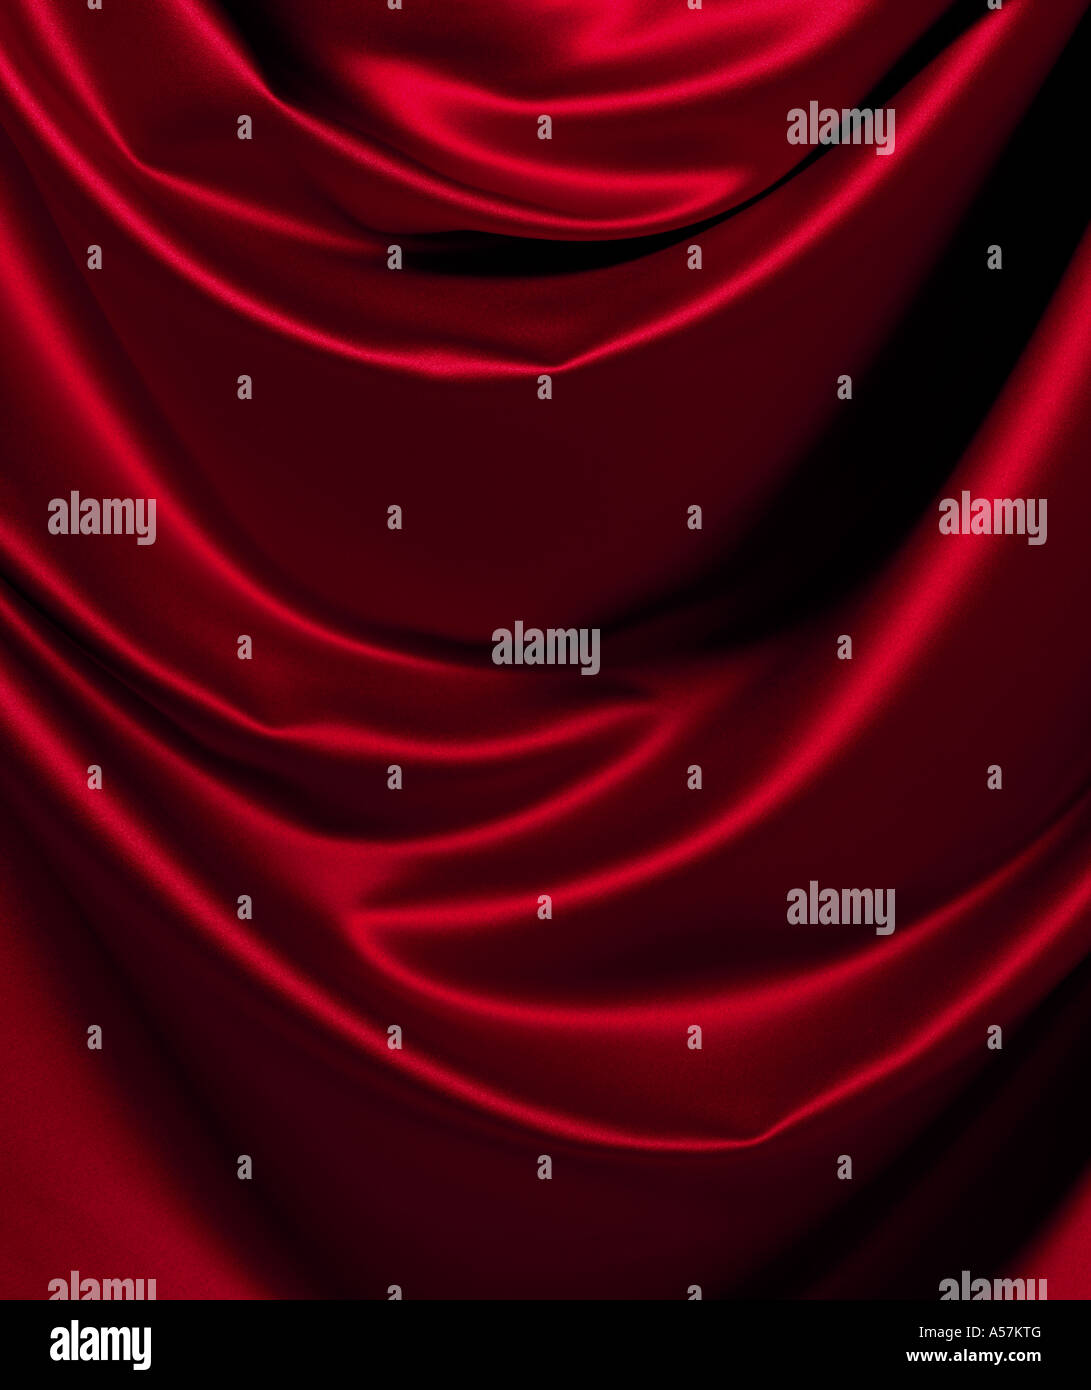 A piece of following red Satin, ideal as a background or backdrop - Stock Image